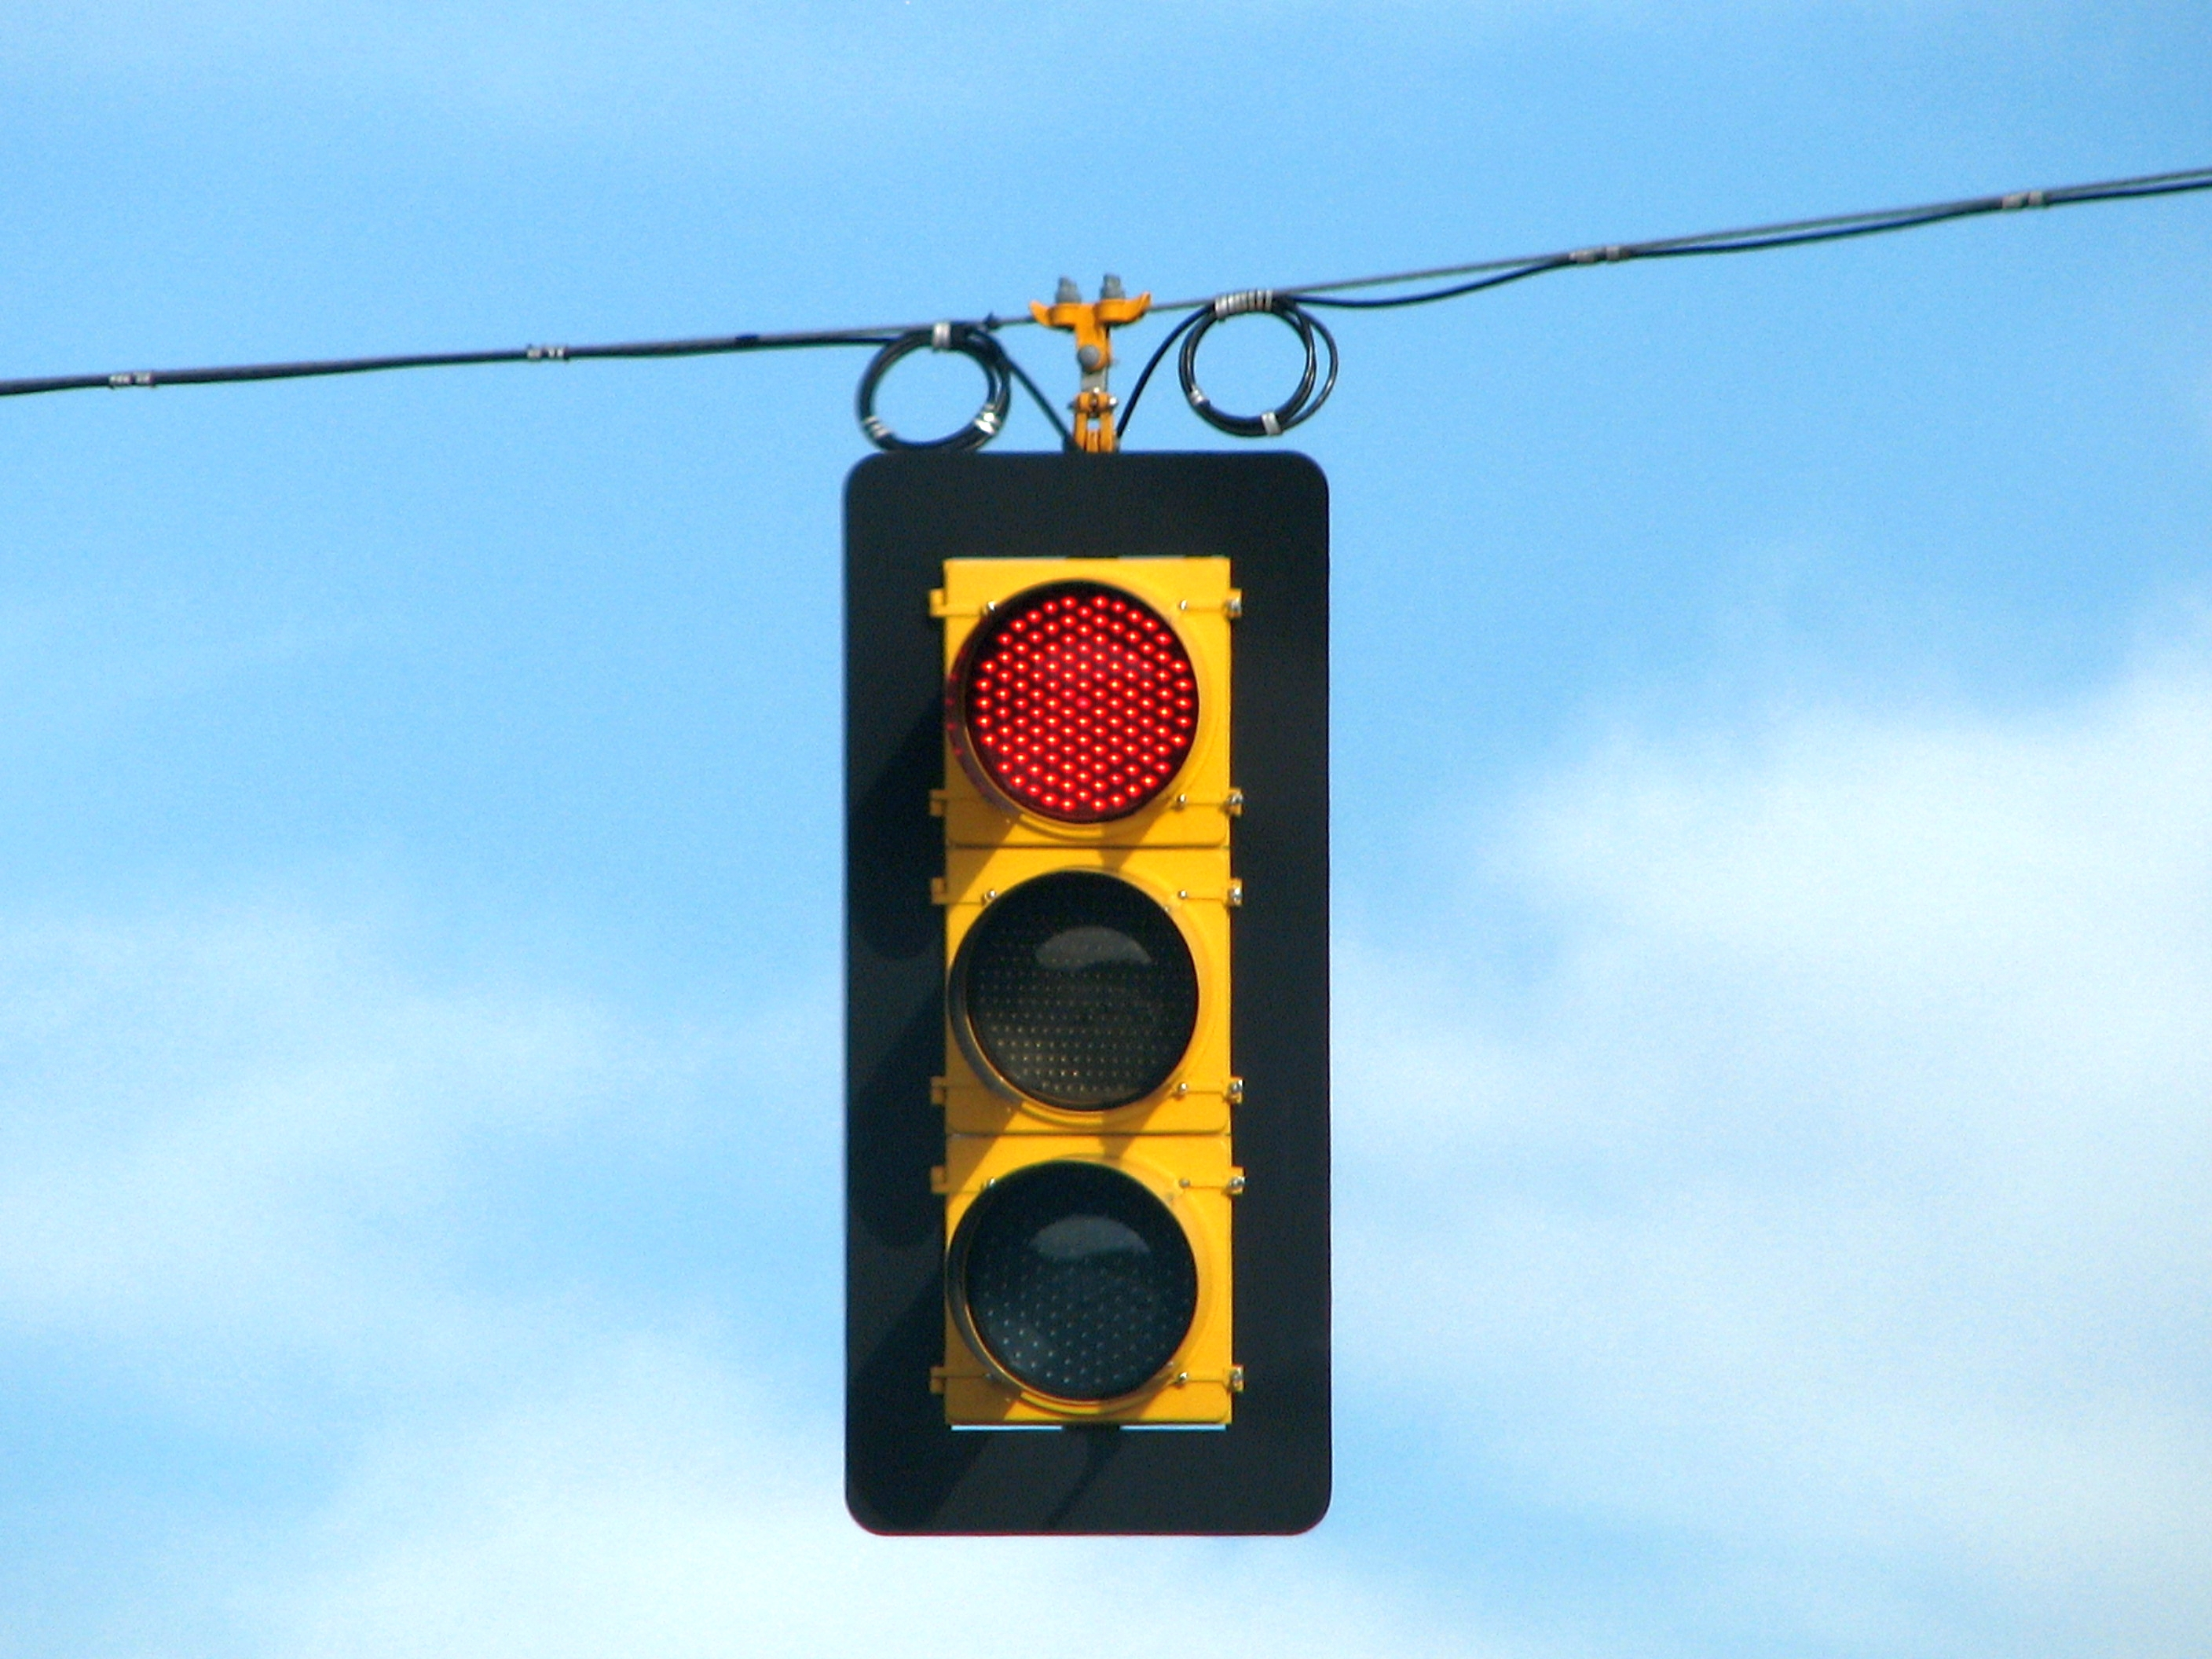 in people often refer to traffic lights as being blue in in people often refer to traffic lights as being blue in color